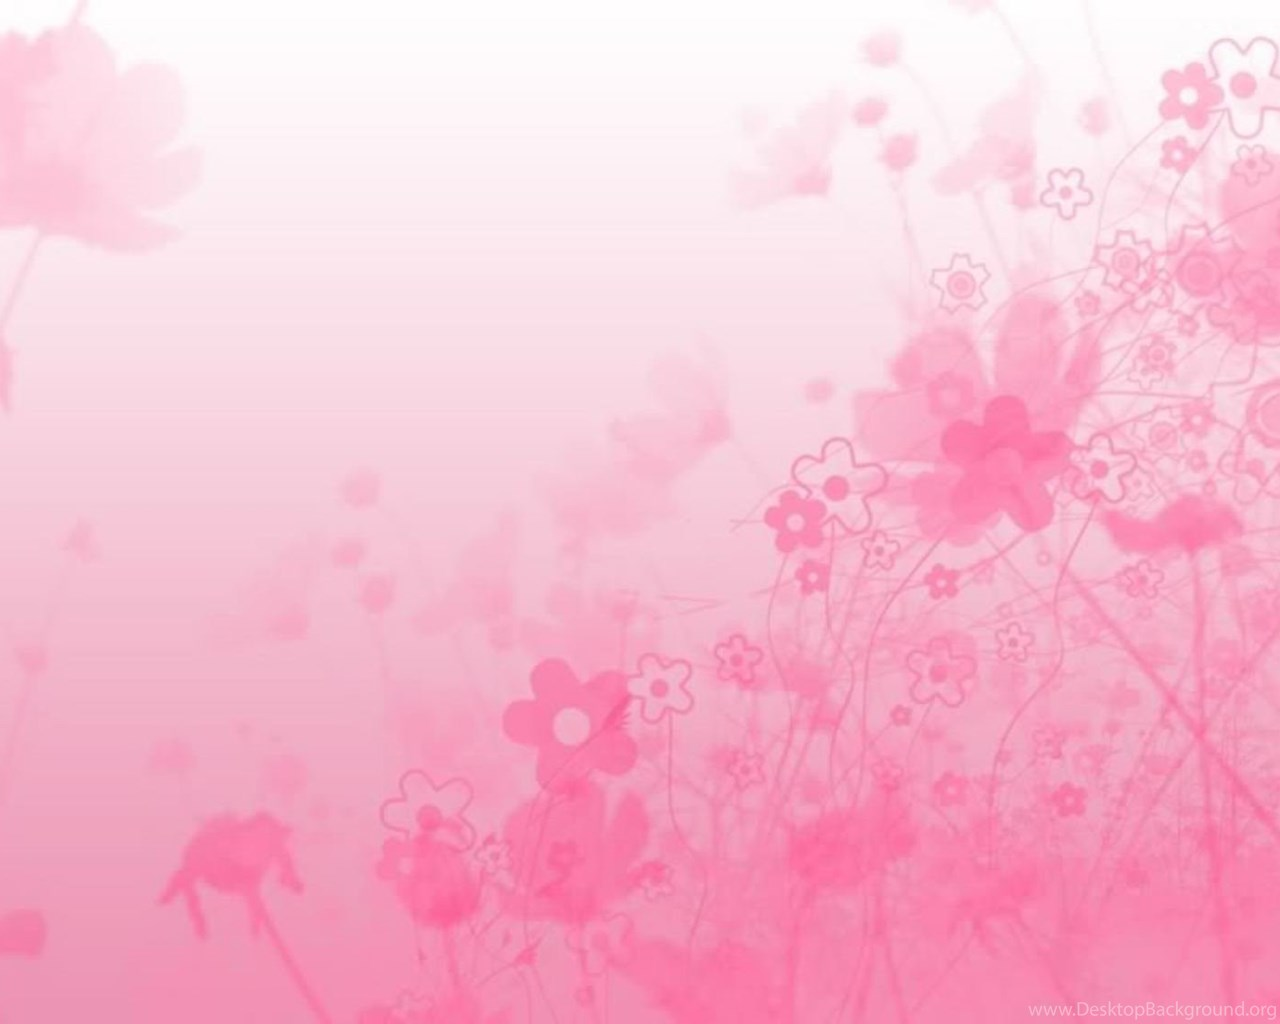 Pink Wallpapers Wallpapers Download Hd 2597 Hd Wallpapers Site